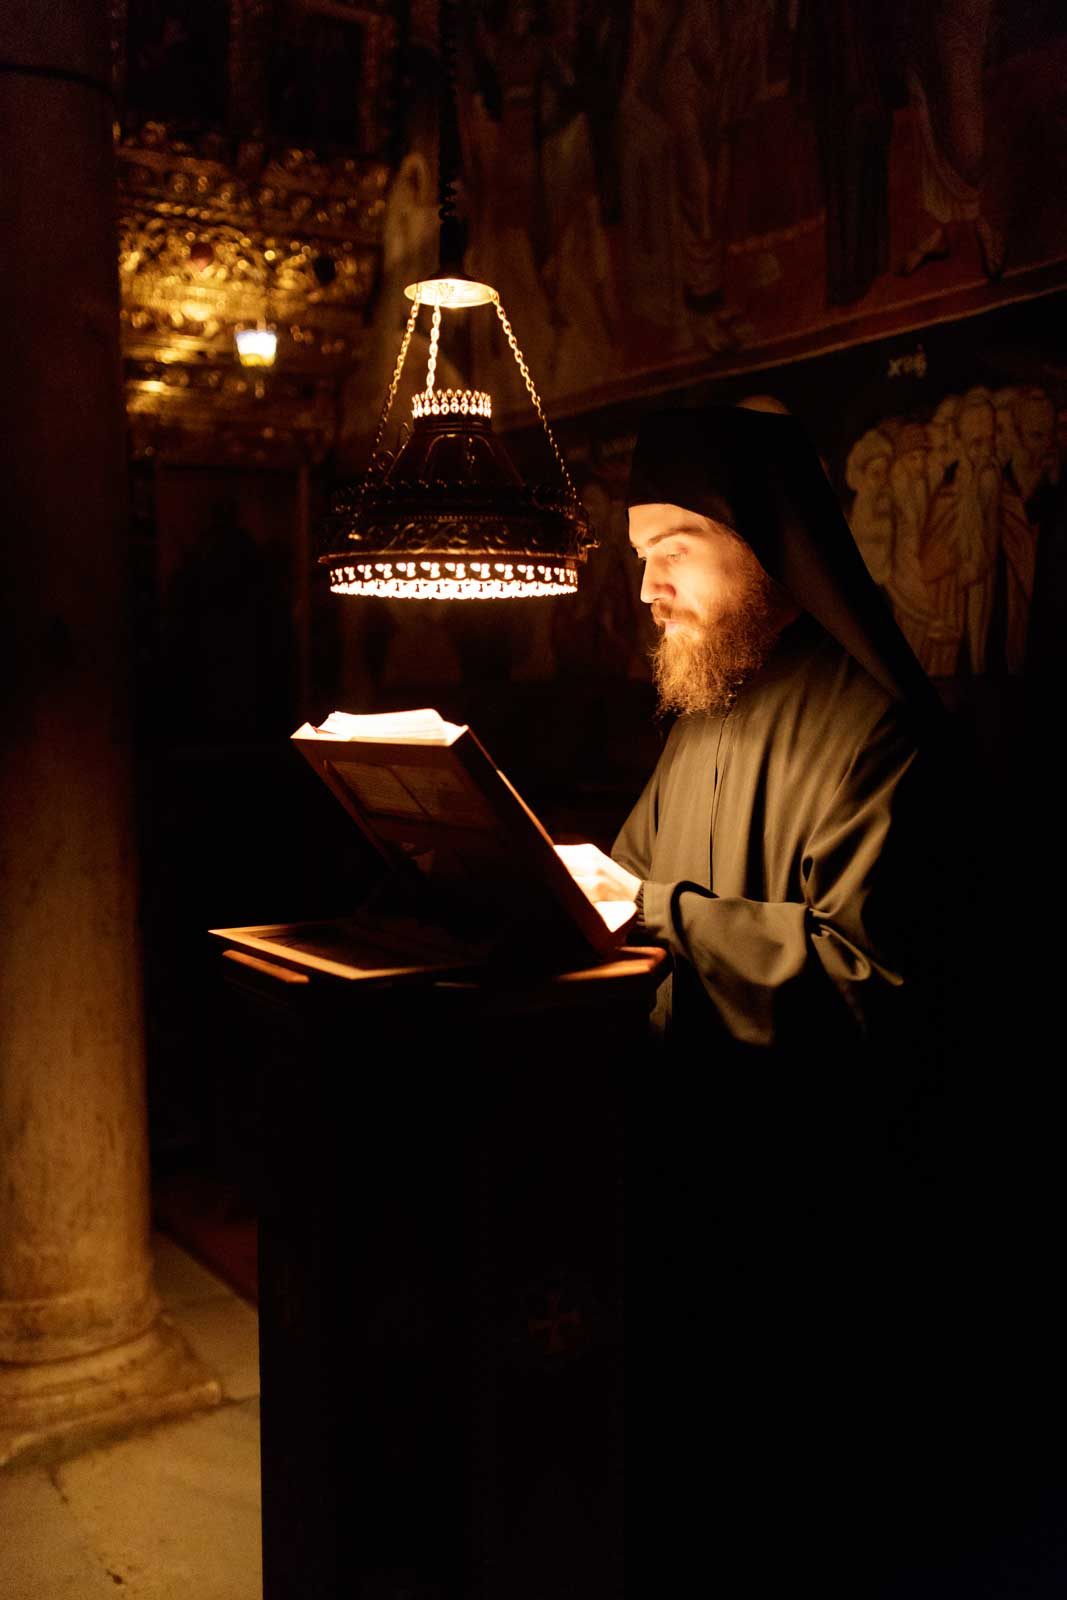 intelligent - Ascetic Experience, Vatopaidi (Vatopedi), Mount Athos, Holy Mountain